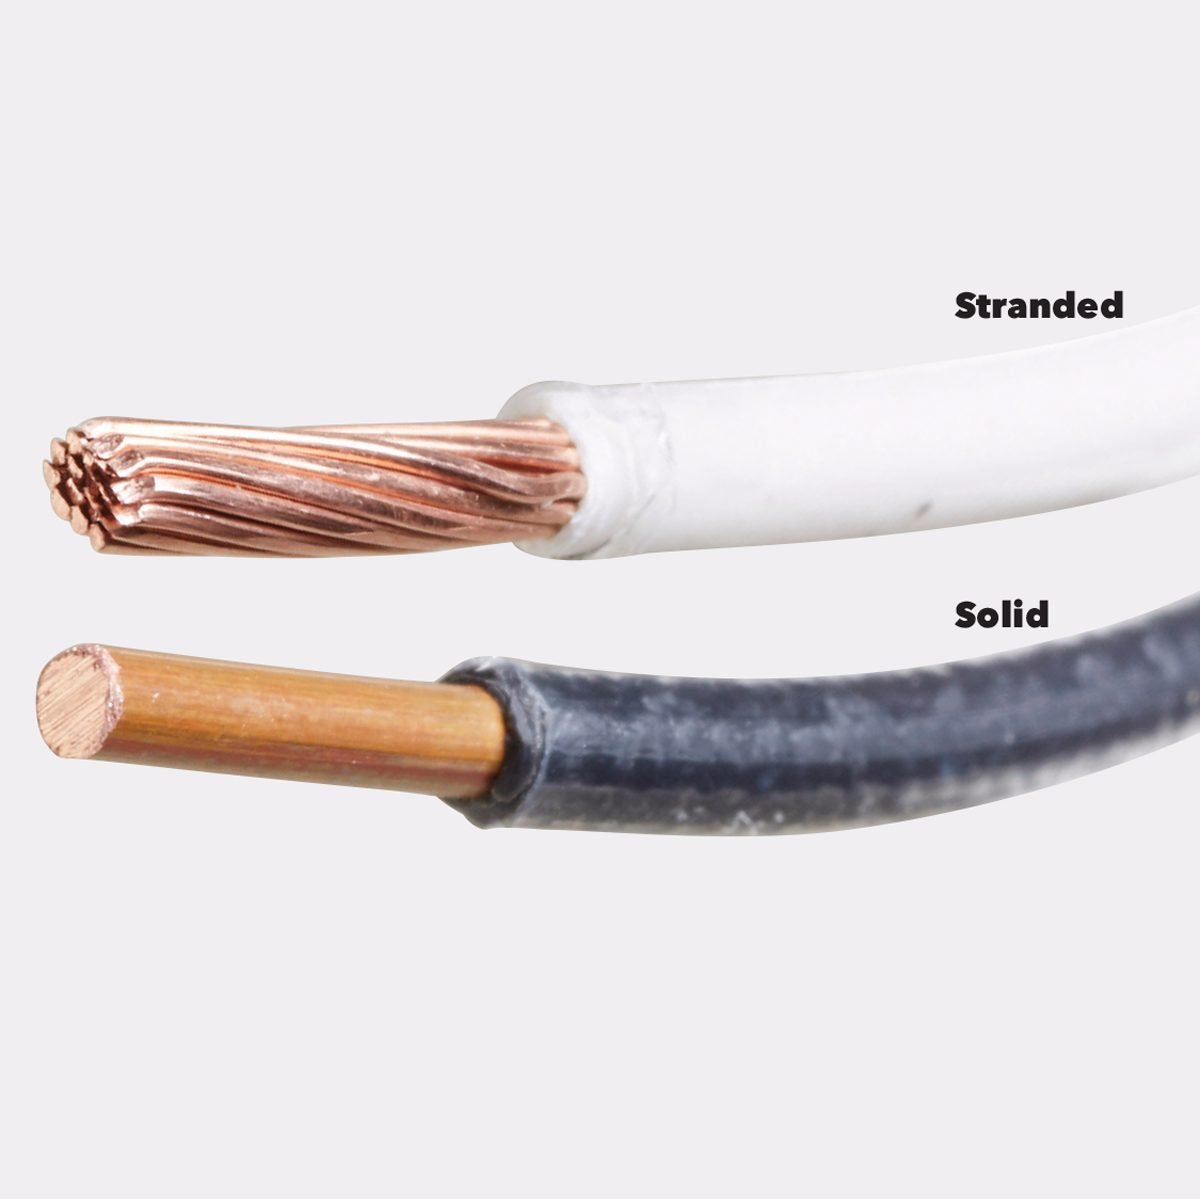 Homeowner Electrical Cable Basics The Family Handyman Home Wiring And Projects Book Stranded Wire Vs Solid